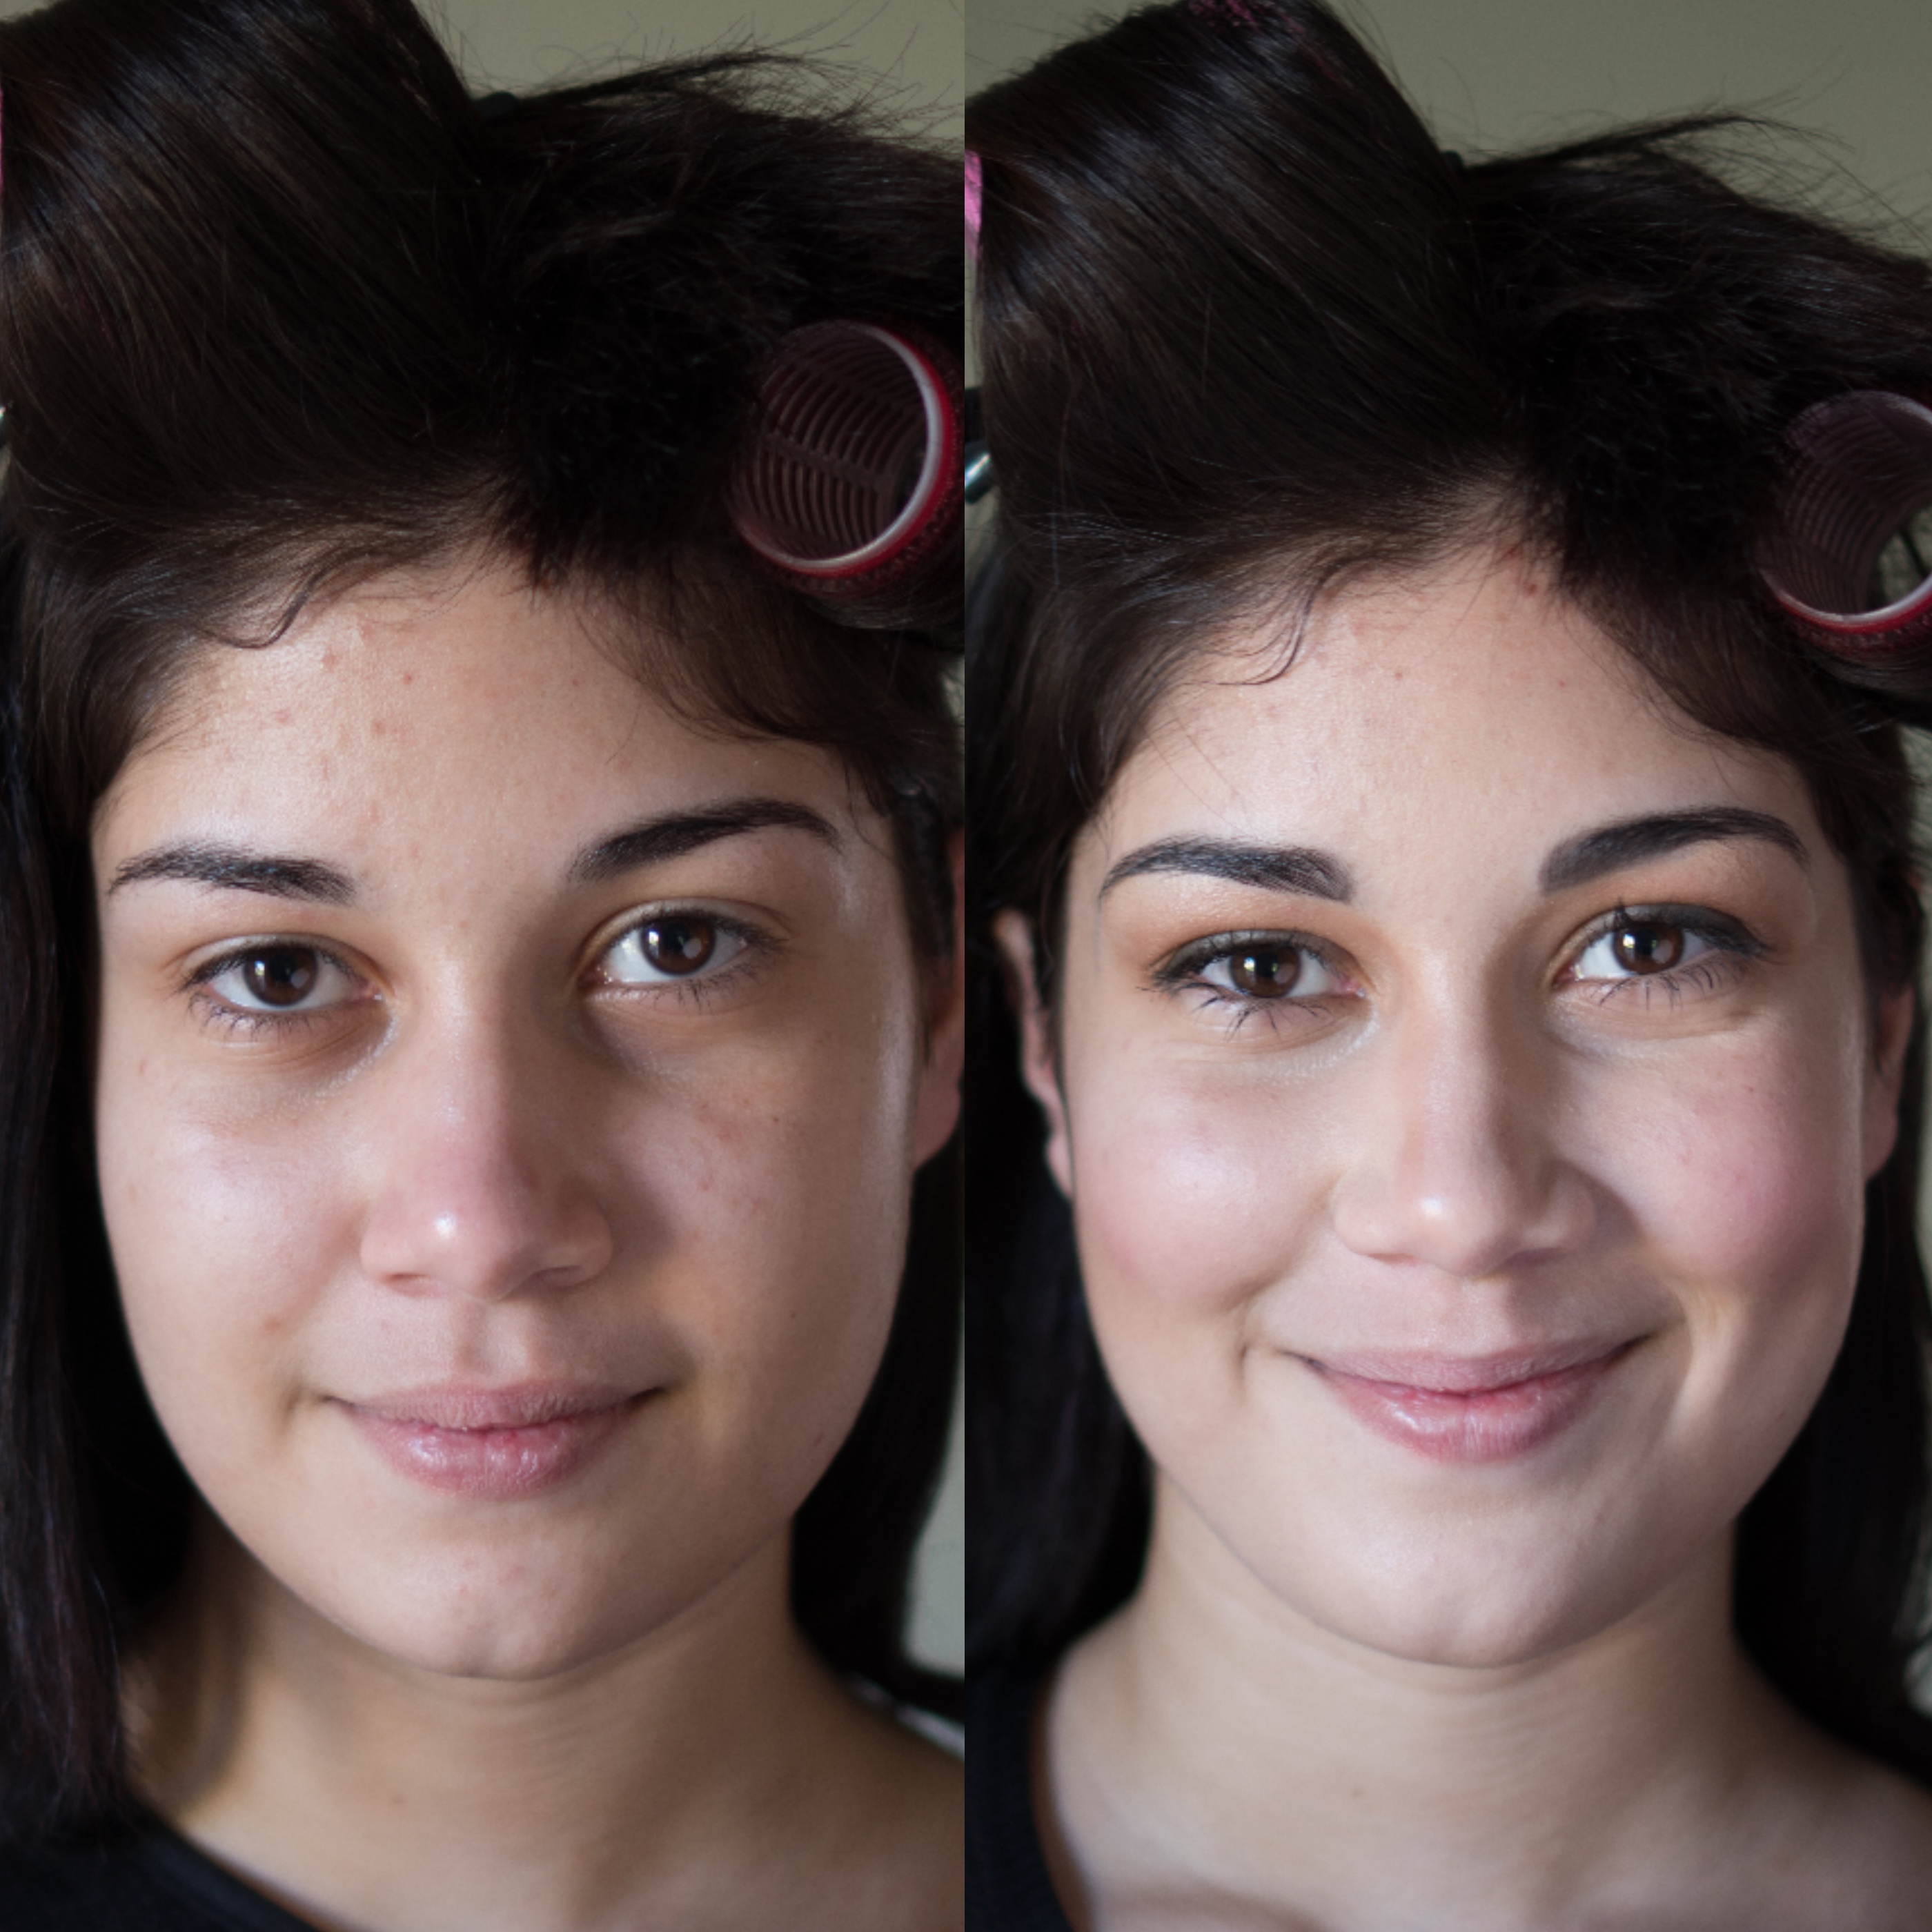 Before and After college ball princess look with Maskcara Beauty Girl at www.maskcarabeautygirl.com